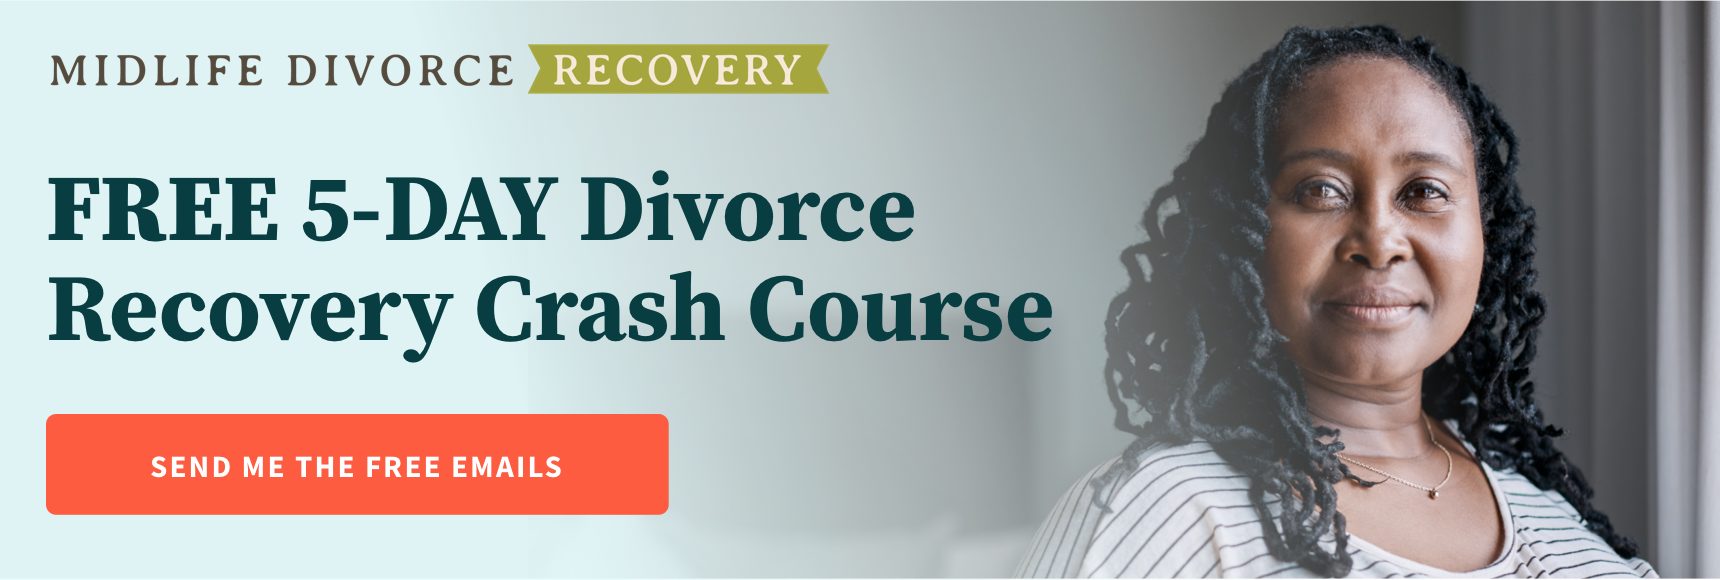 5-Day Divorce Recovery Crash Course. Take the first steps in your recovery and start healing today! Send me the free emails